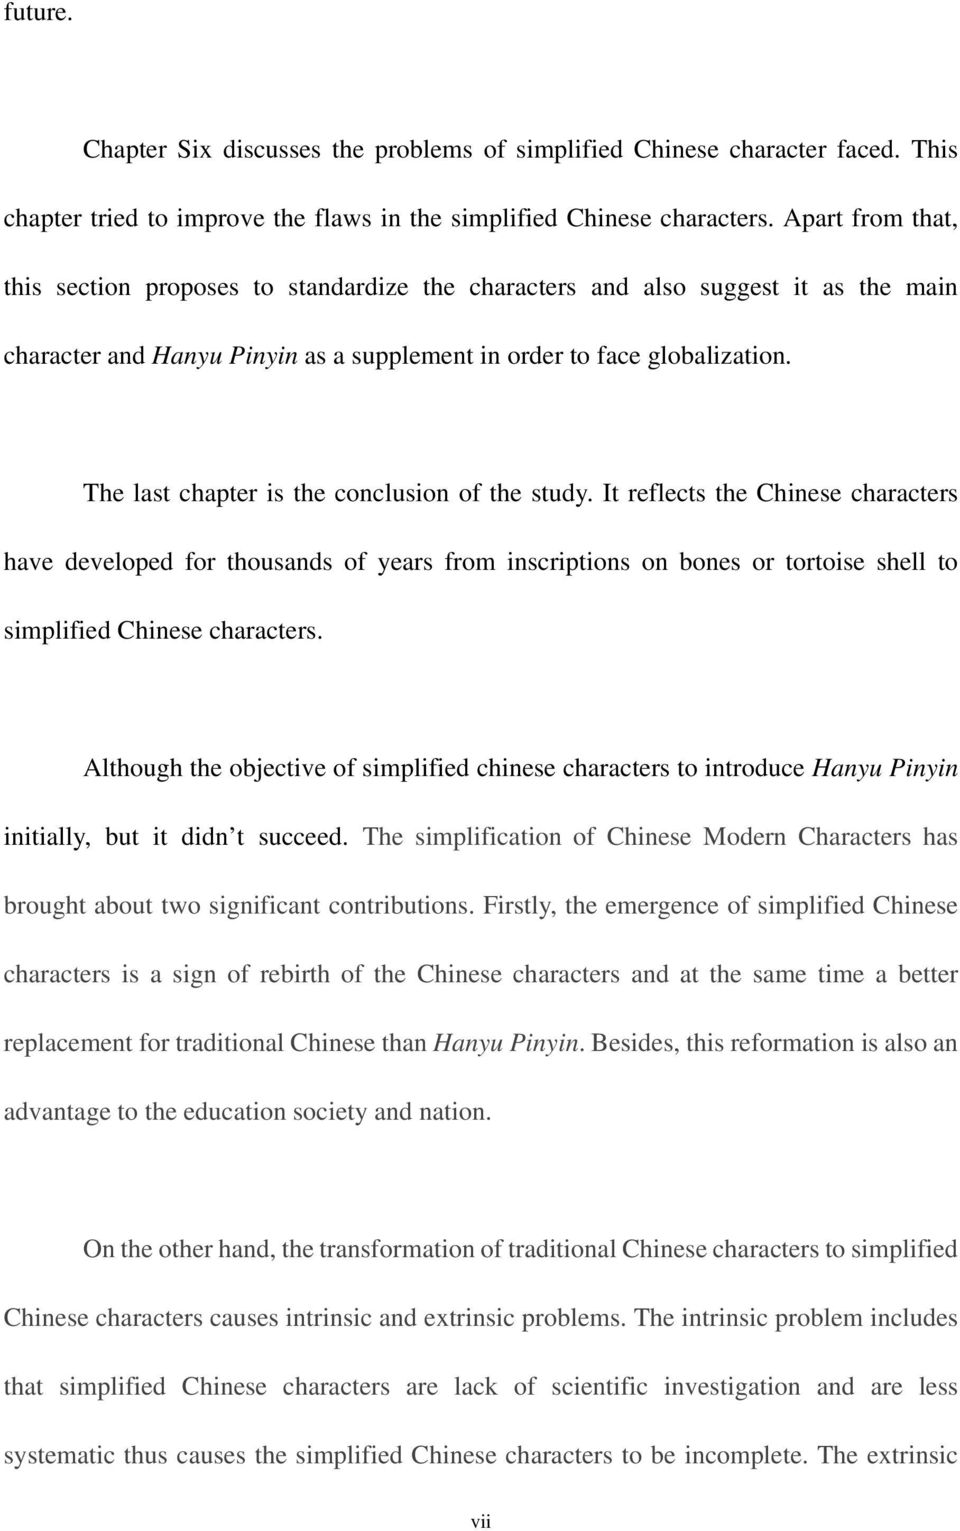 The last chapter is the conclusion of the study. It reflects the Chinese characters have developed for thousands of years from inscriptions on bones or tortoise shell to simplified Chinese characters.